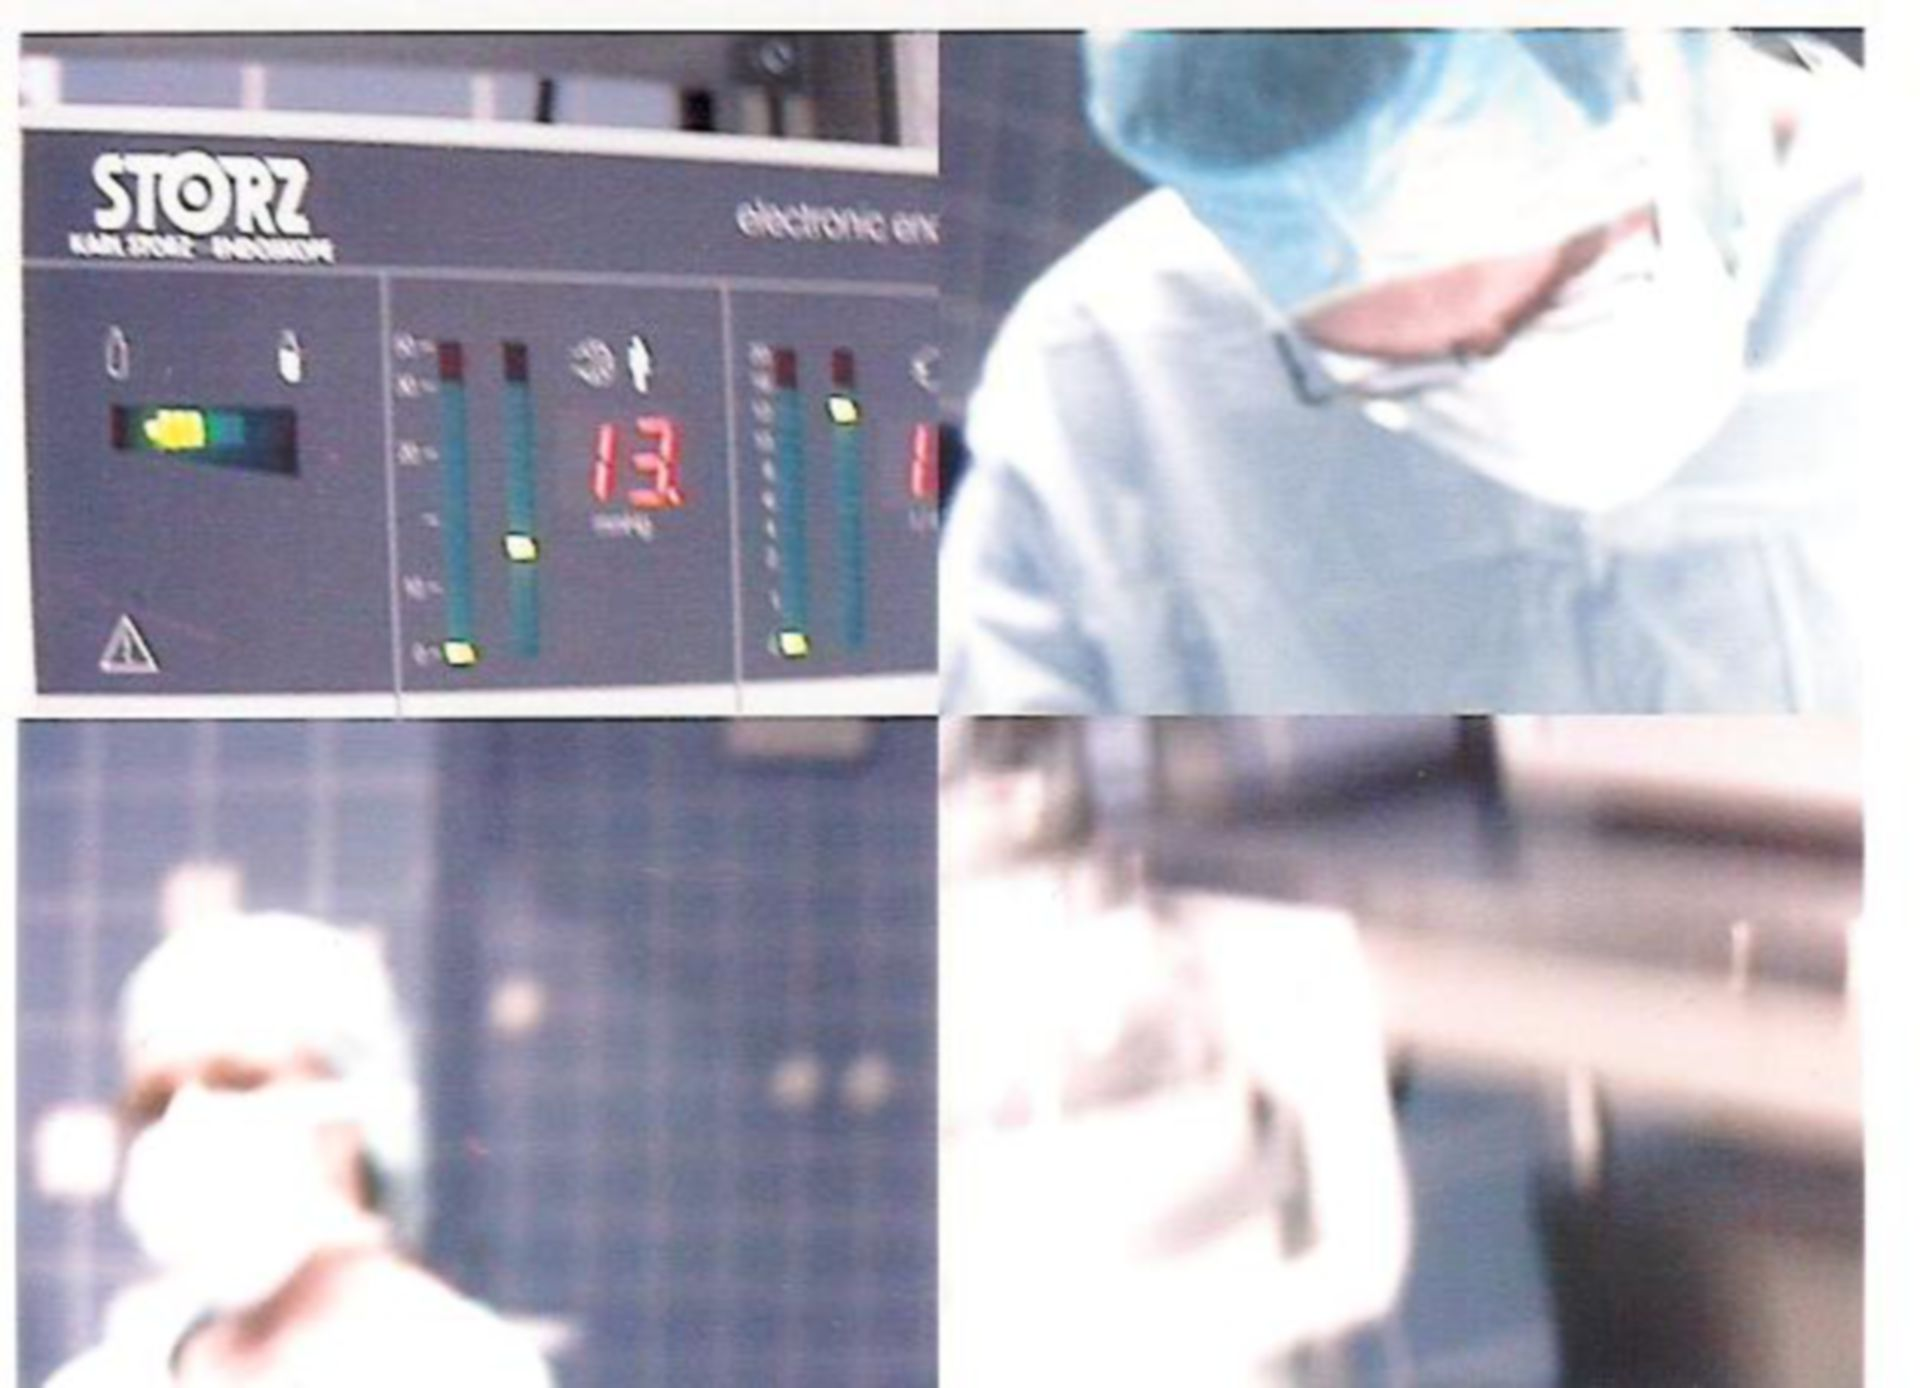 Photo During Surgery